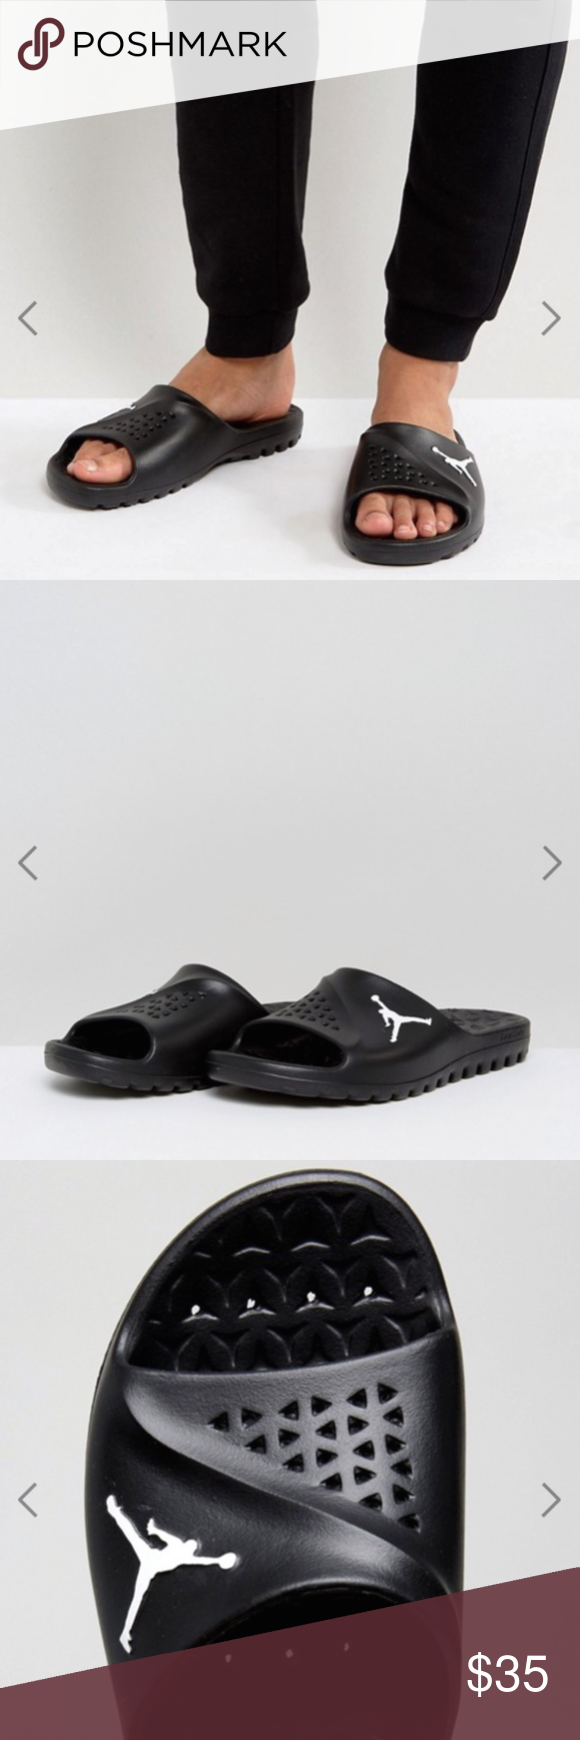 91007056f Nike JORDAN SUPER FLY TEAM SLIDE Men's Sandal The Jordan Super.Fly Team  Men's Slide is ideal for before the game and after, designed with a cushy  footbed ...